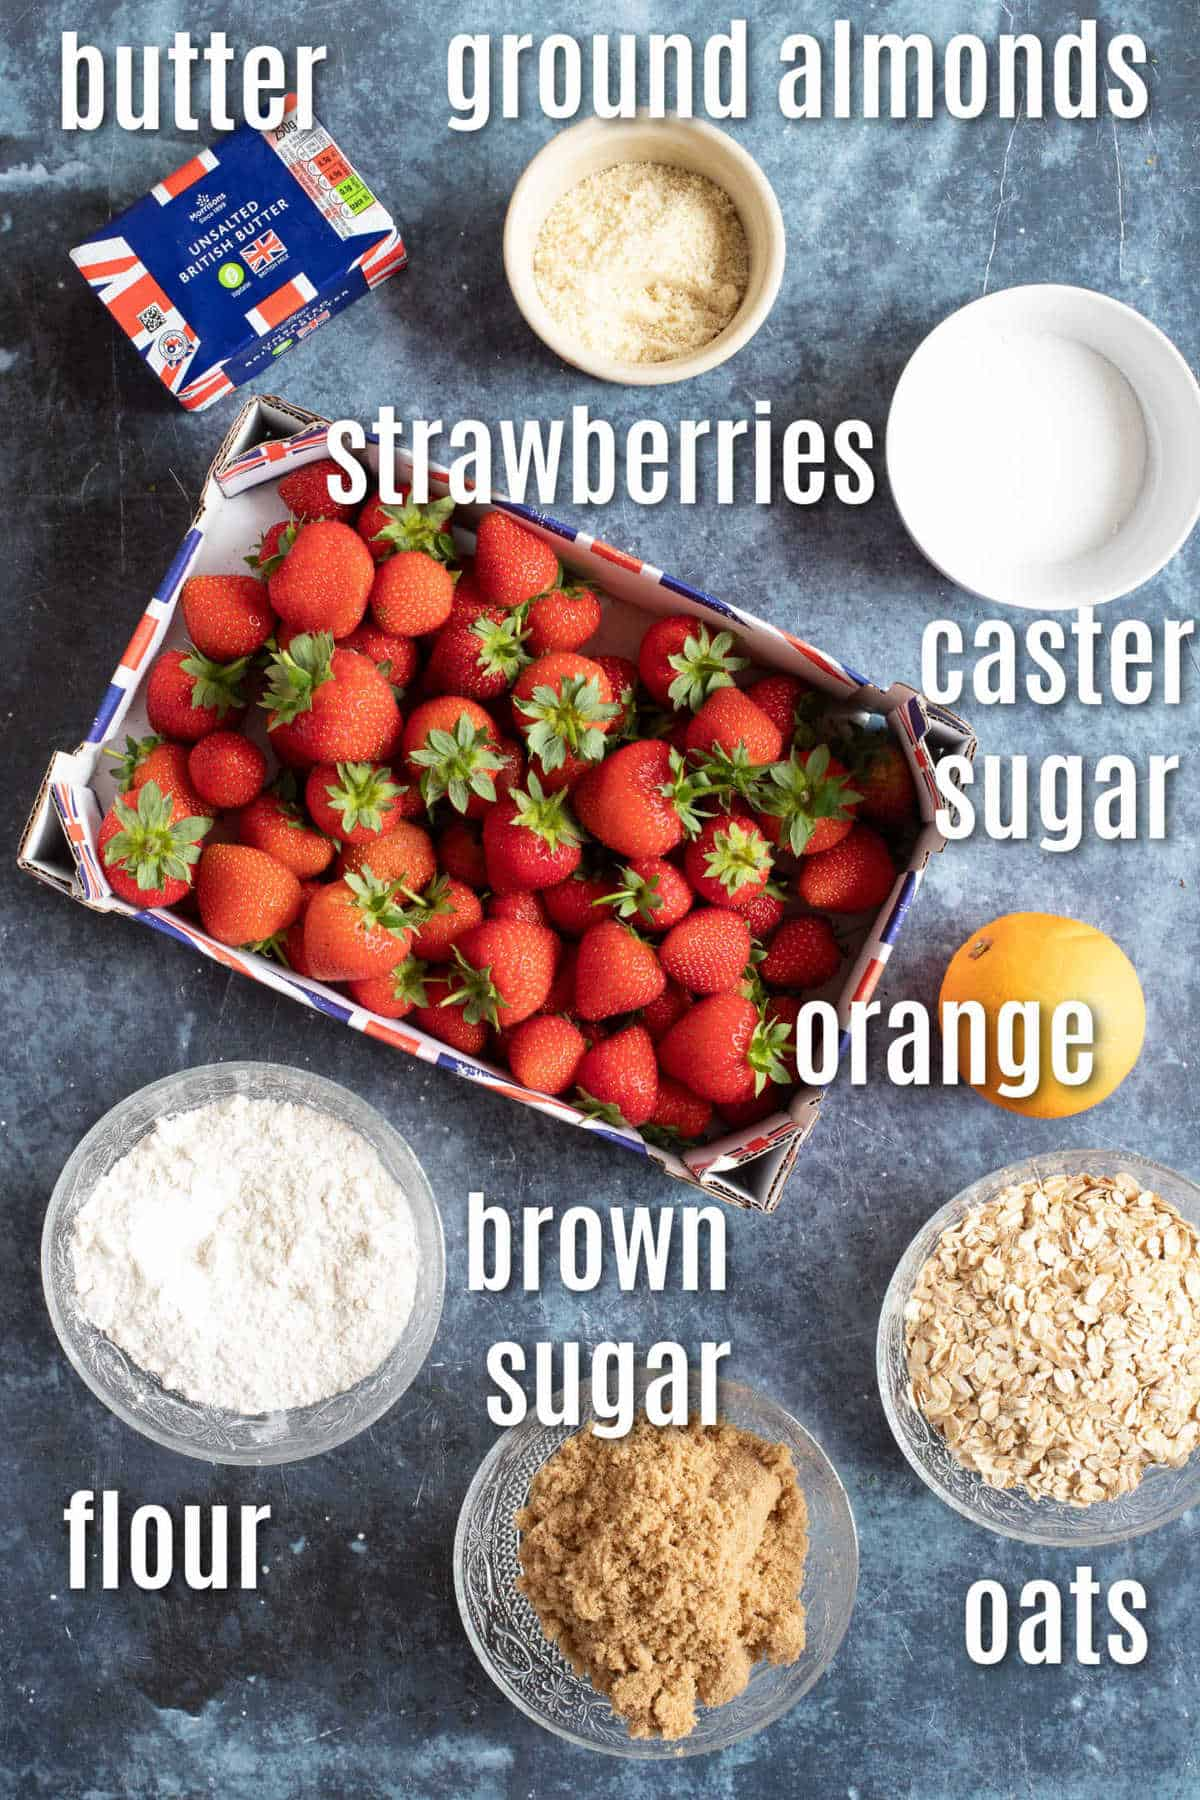 Ingredients needed to make the strawberry crumble.